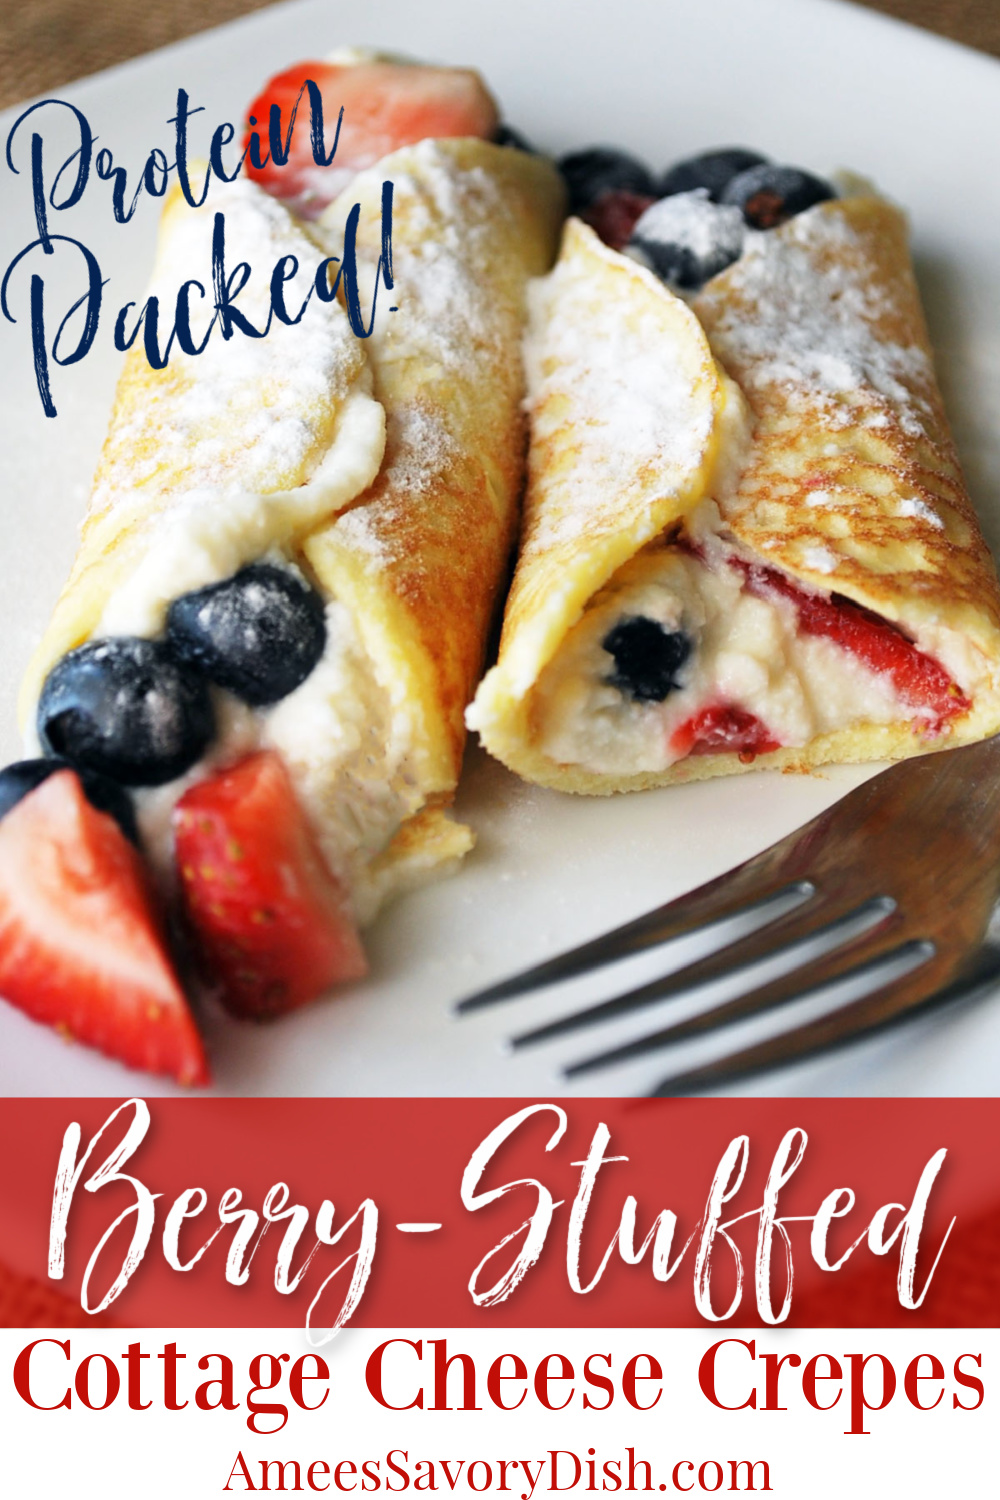 Delicious high protein cottage cheese crepes stuffed with a sugar-free ricotta cheese filling and fresh berries. A tasty and filling breakfast or dessert. #cottagecheesecrepes #crepes #proteincrepes #cottagecheesepancakes #stuffedcrepes #proteinbreakfast via @Ameessavorydish